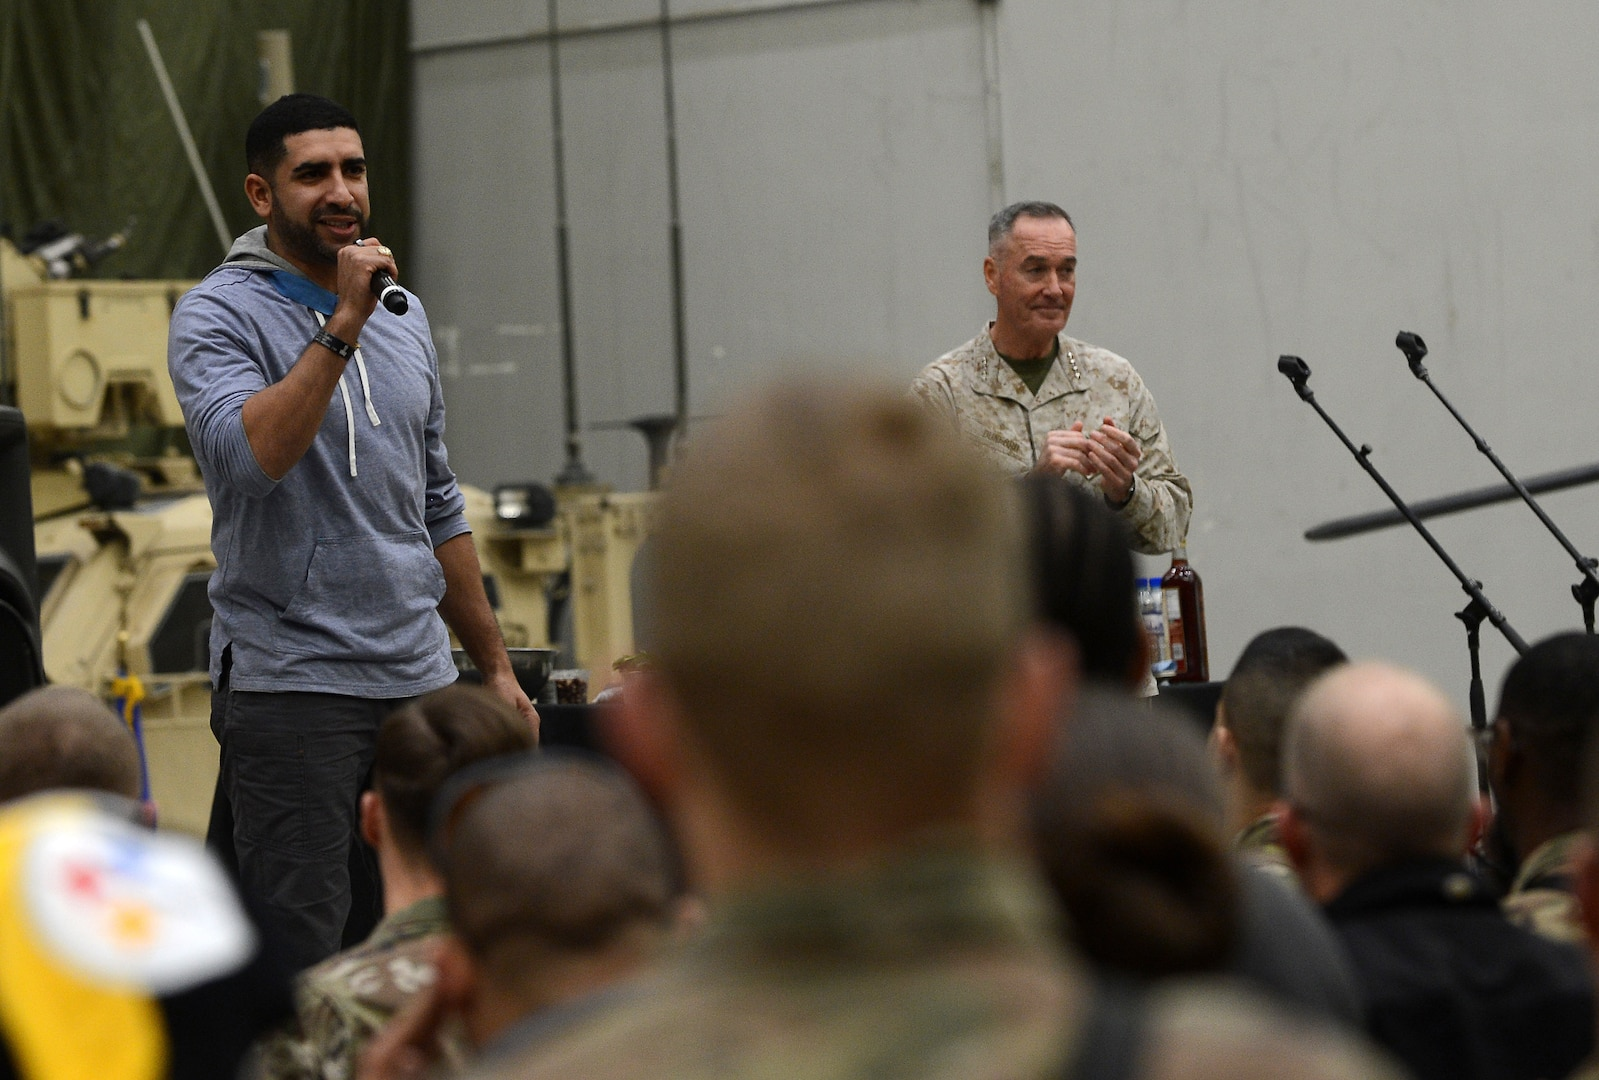 Medal of Honor Recipient Army Capt. (ret.) Florent Groberg, speaks to Bagram Airfield troops during the 2017 Chairman's USO Holiday Tour Dec. 24, 2017 at Bagram Airfield, Afghanistan. Deployed service members, civilians and contractors enjoyed a USO Holiday Tour, featuring actor Adam Devine, comedian Iliza Shlesinger, and WWE Wrestler Alicia Fox, Medal of Honor Recipient Army Capt. (ret.) Florent Groberg, Celebrity Chef Robert Irvine, TNA Wrestler Gail Kim, country singer Jerrod Nieman and WWE wrestler The Miz. (U.S. Air Force photo/Staff Sgt. Divine Cox)